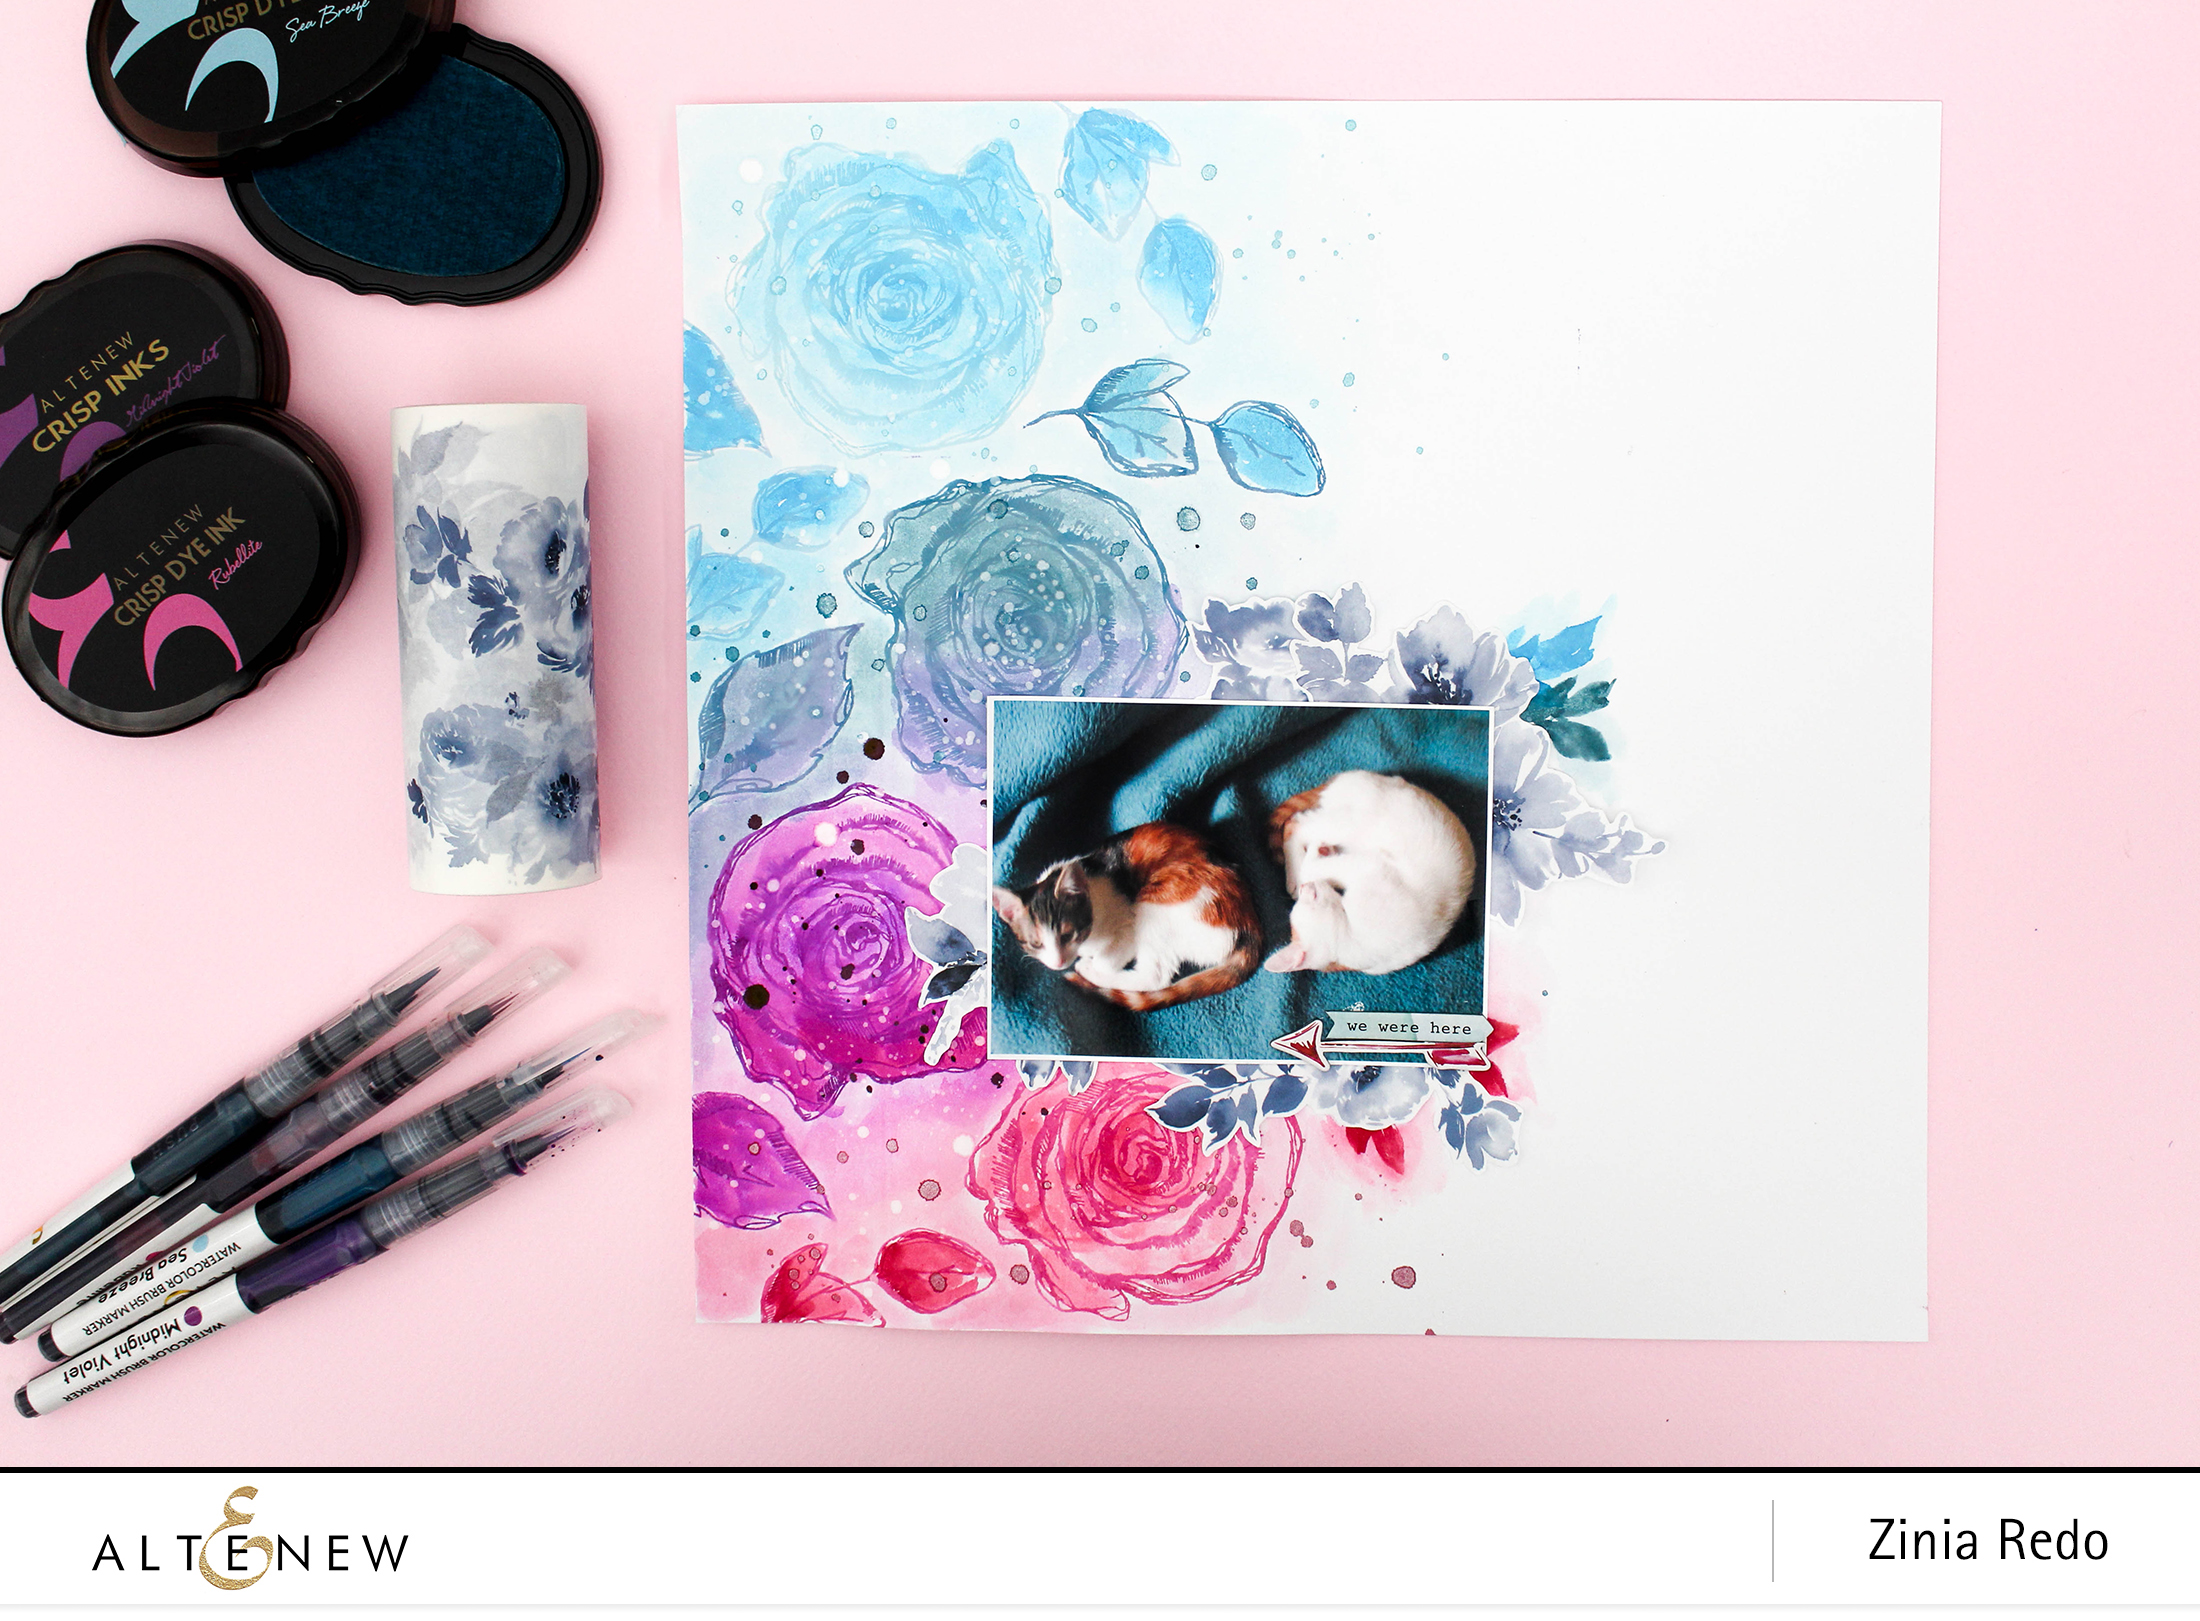 Watercolor Inked Rose Background @altenewllc @ziniaredo #ziniaredo #altenew